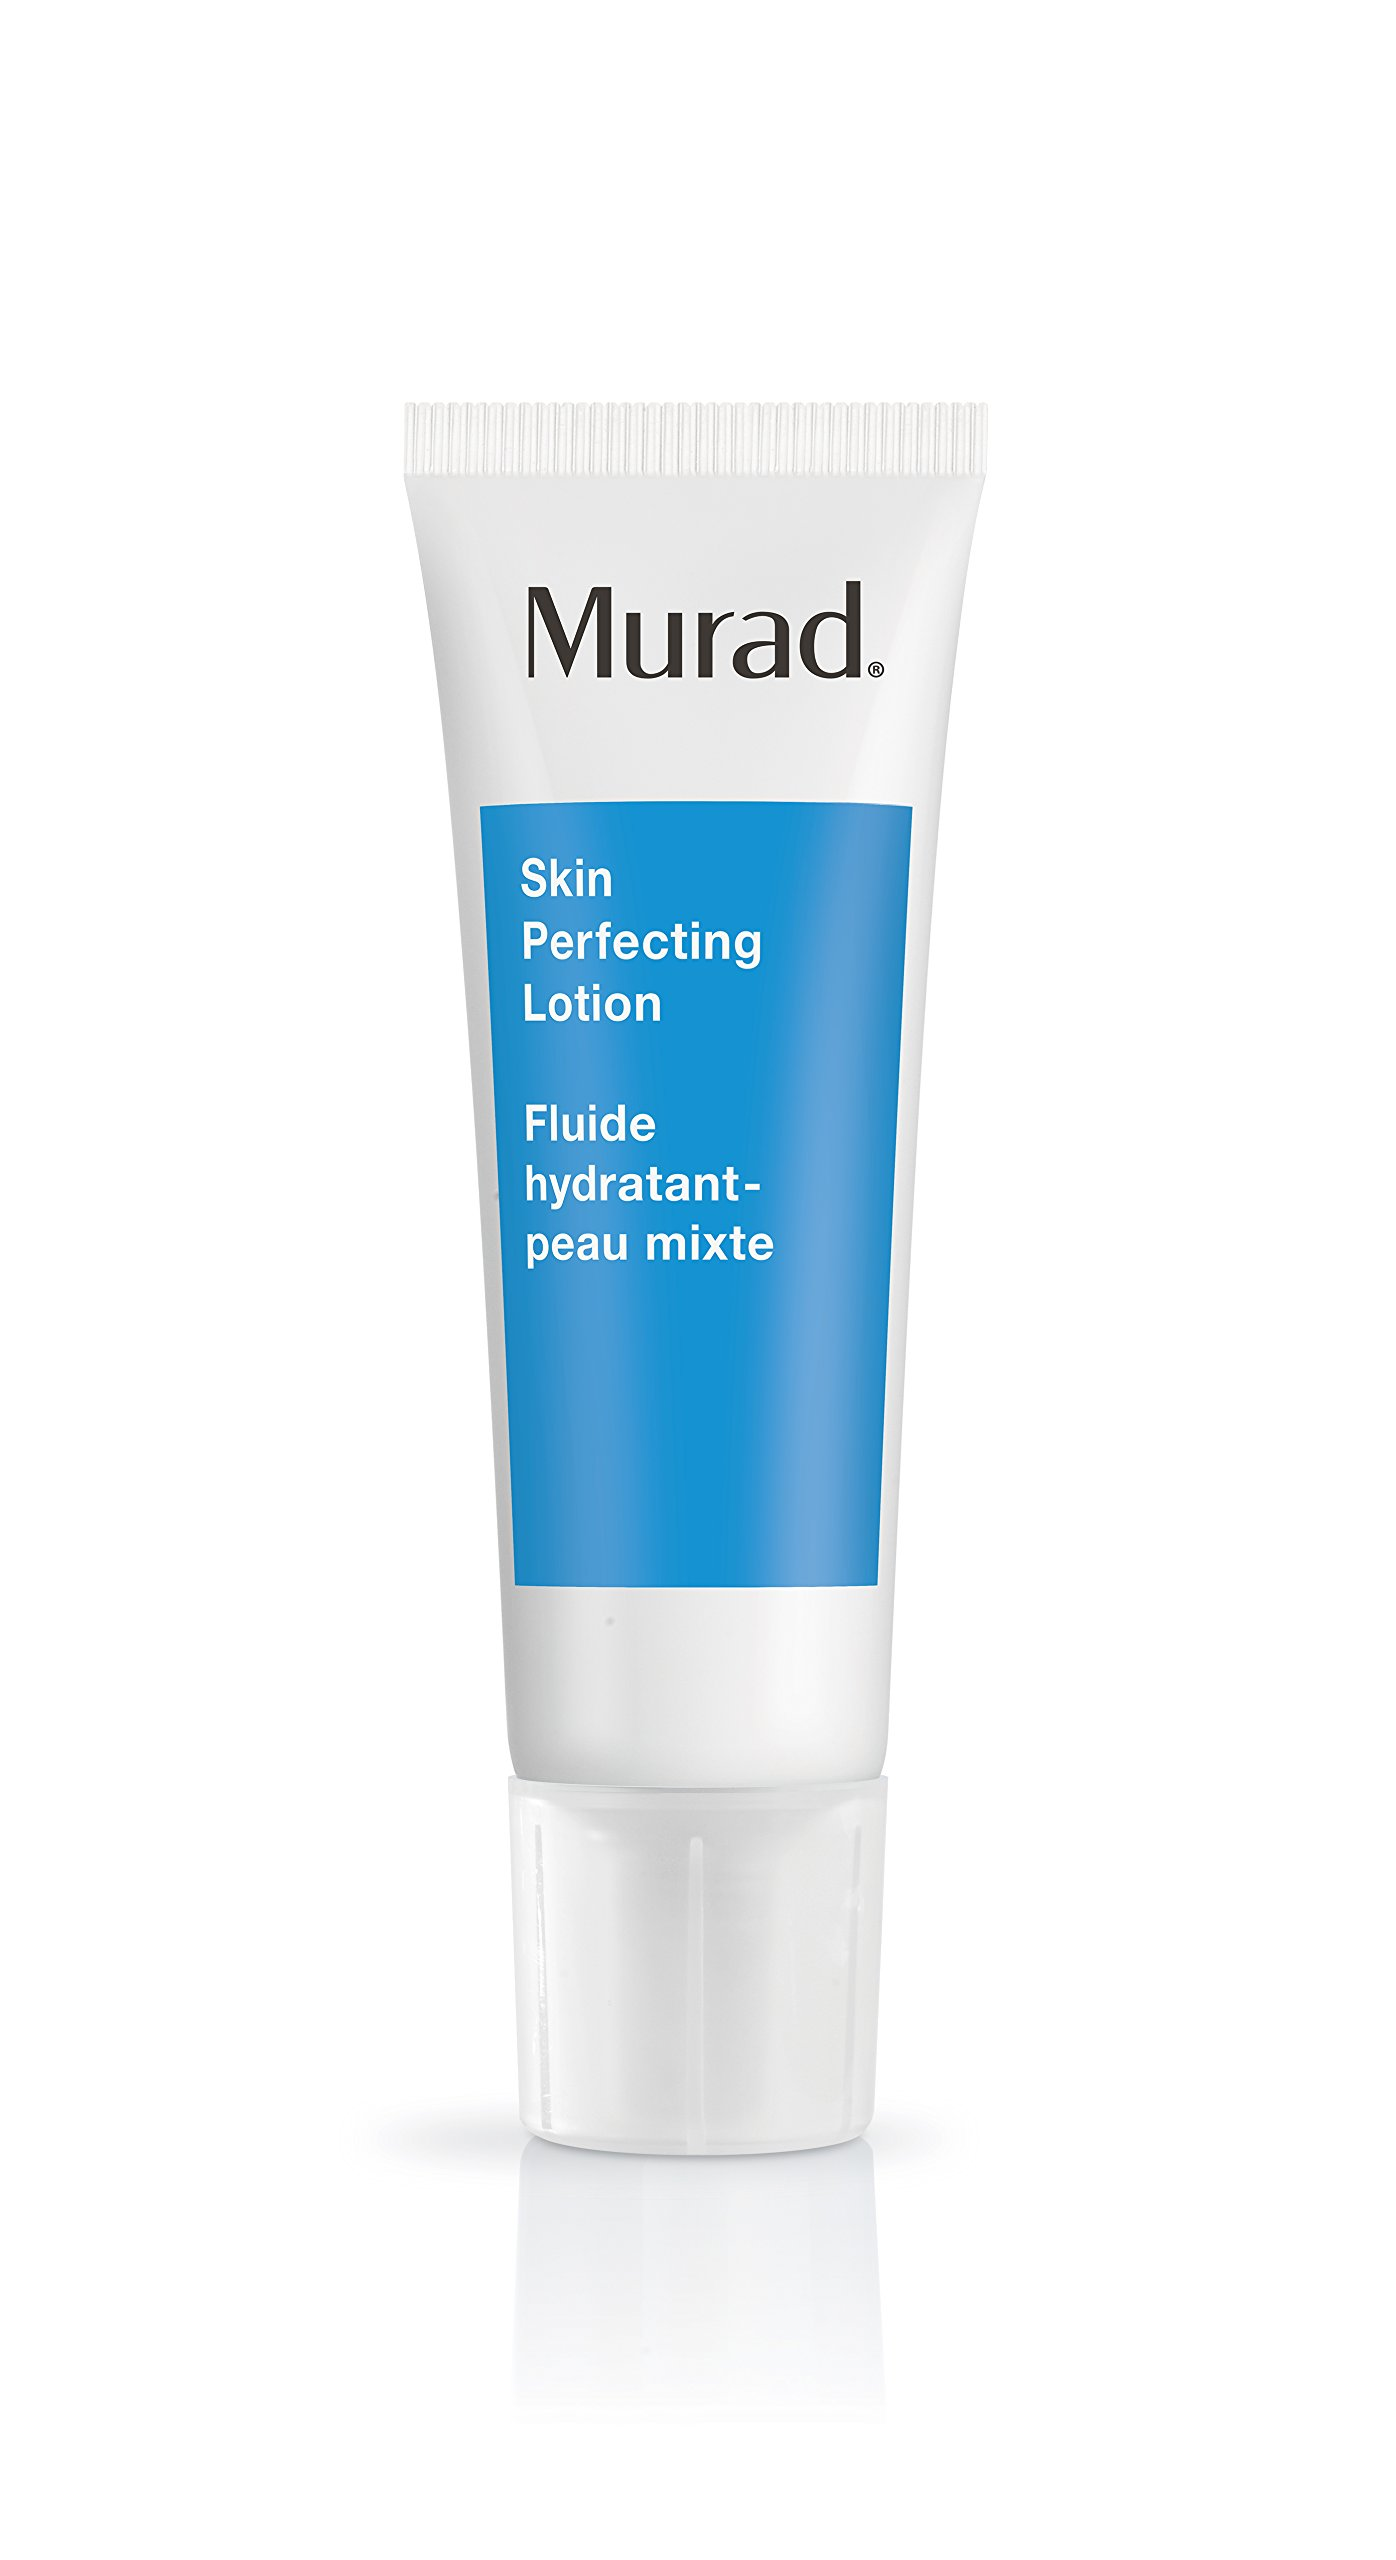 Murad Acne Control Skin Perfecting Lotion - Step 3 (1.7 fl oz), Oil-Free Daily Hydrating Face Moisturizer for Blemish Prone Skin with Retinol and Allantonin to Reduce Oil, Tighten Pores, and Calm Skin